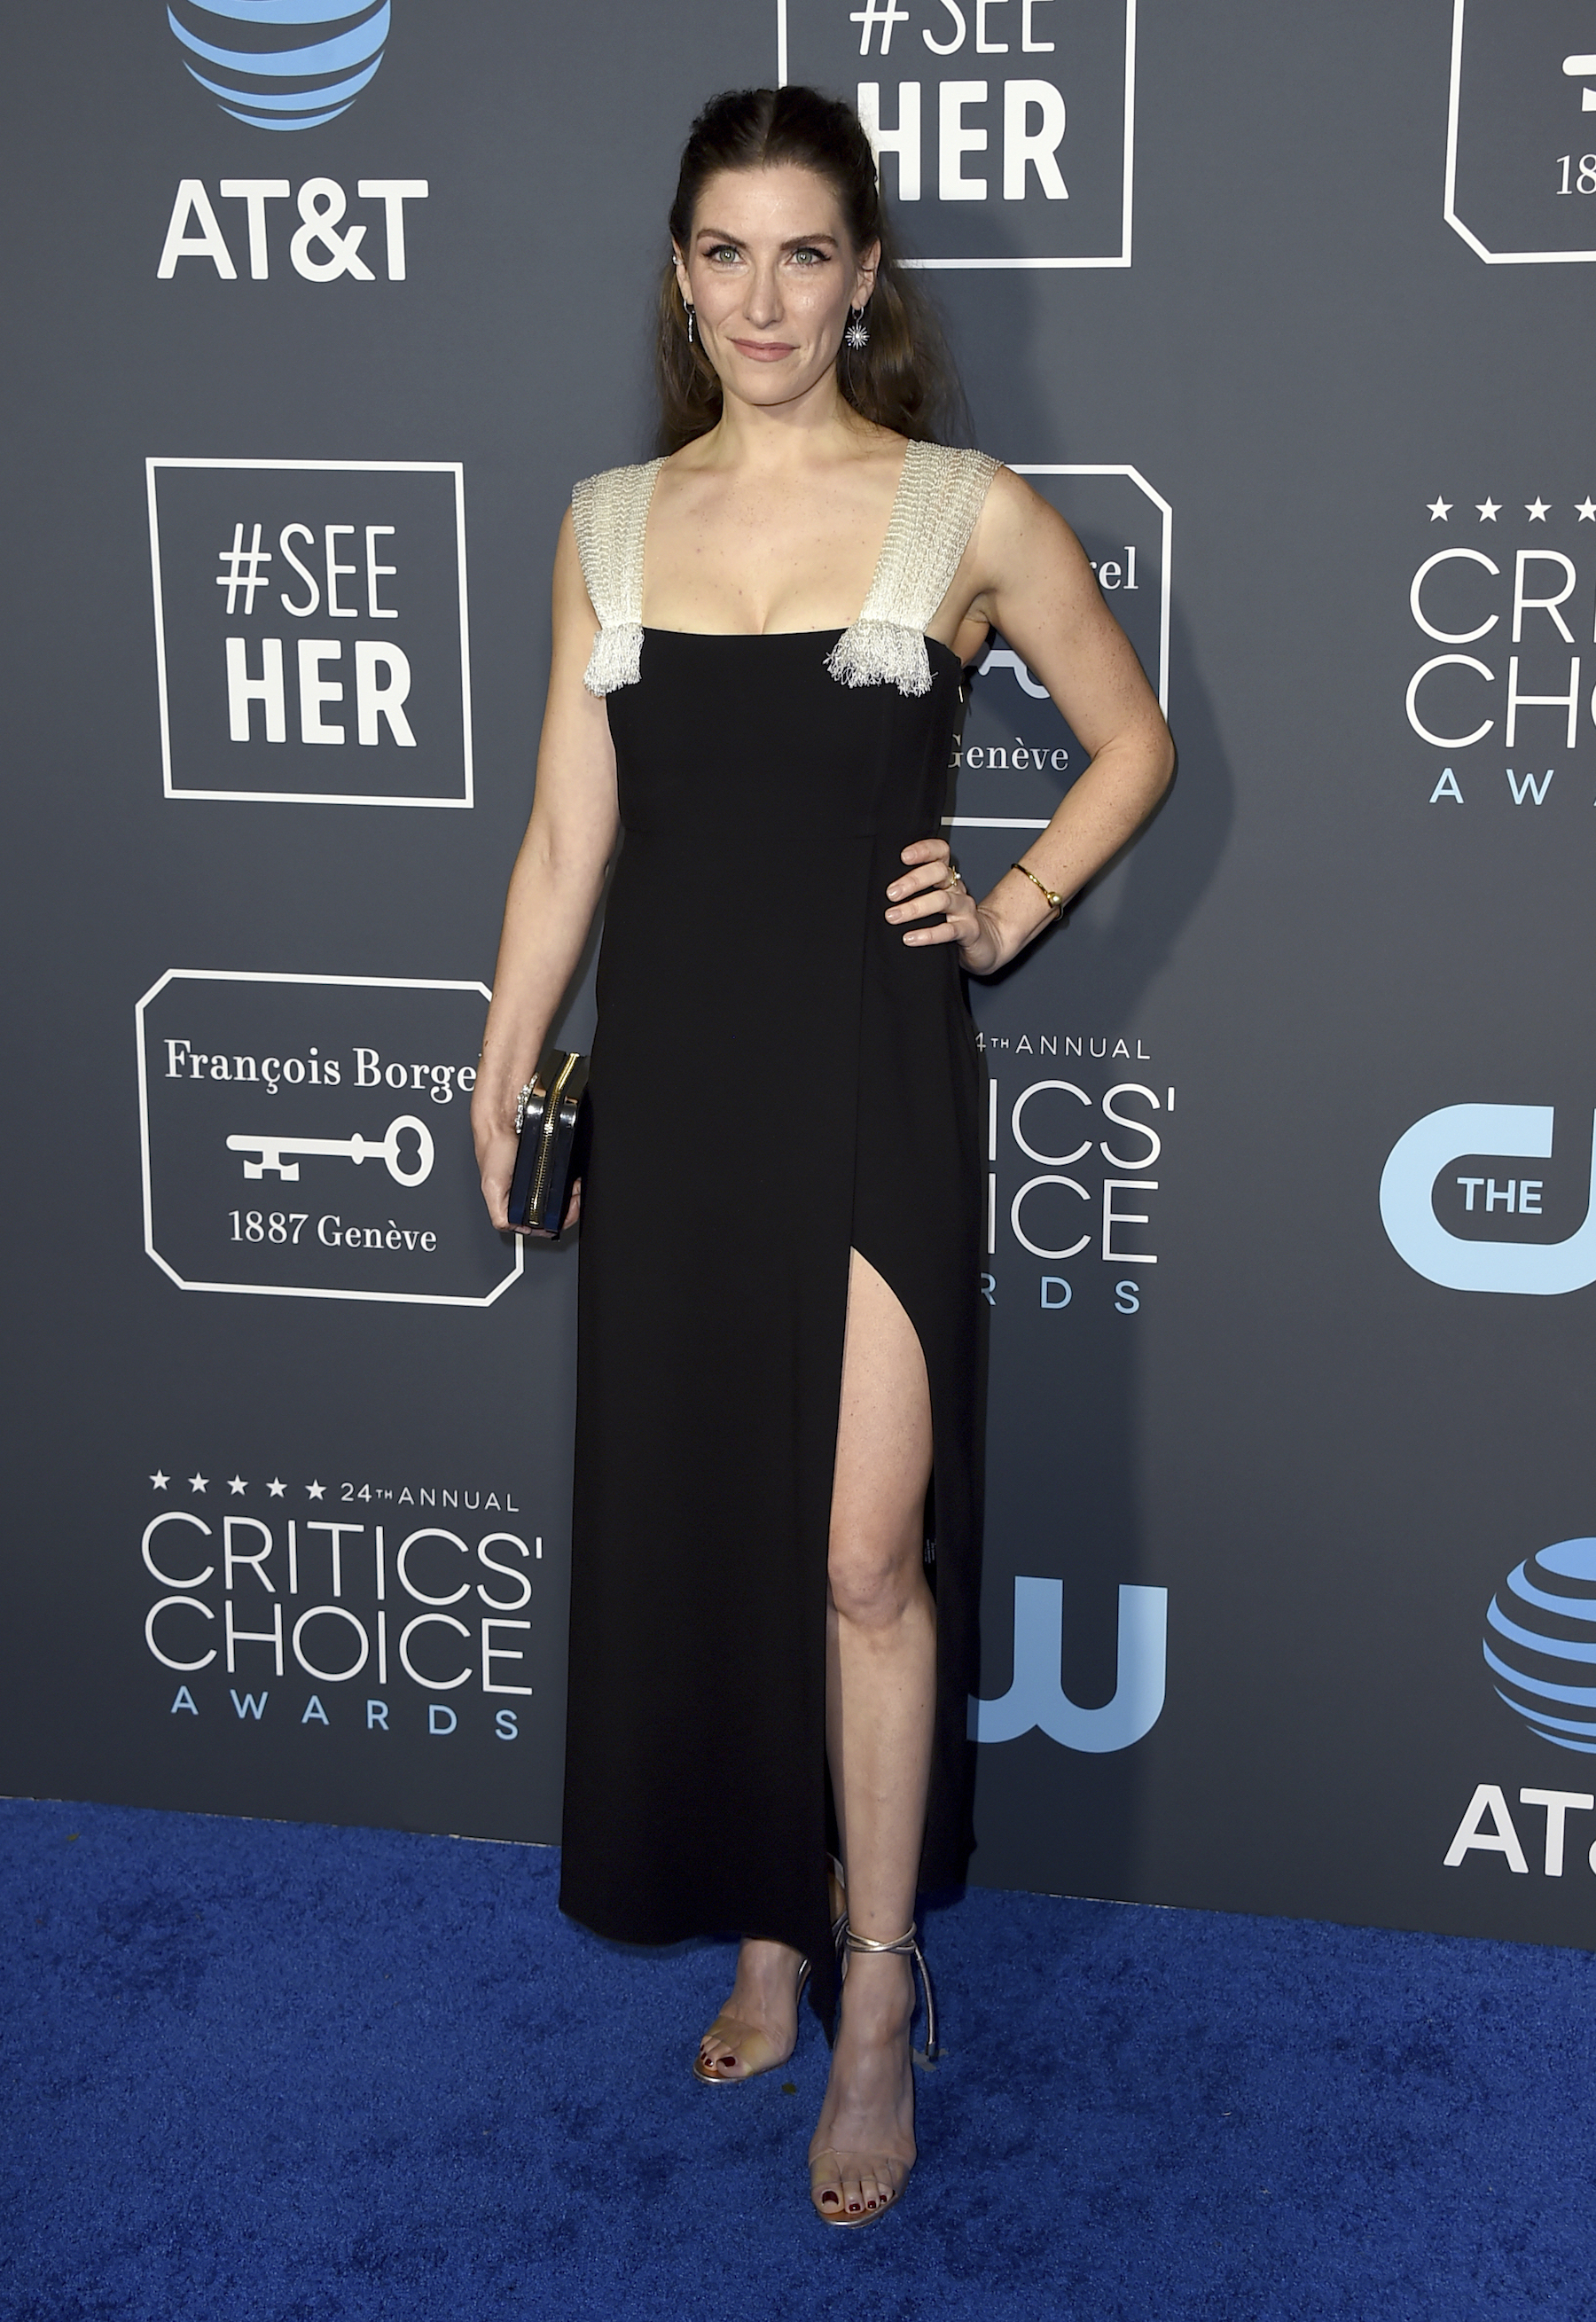 "<div class=""meta image-caption""><div class=""origin-logo origin-image ap""><span>AP</span></div><span class=""caption-text"">Sarah Levy arrives at the 24th annual Critics' Choice Awards on Sunday, Jan. 13, 2019, at the Barker Hangar in Santa Monica, Calif. (Jordan Strauss/Invision/AP)</span></div>"